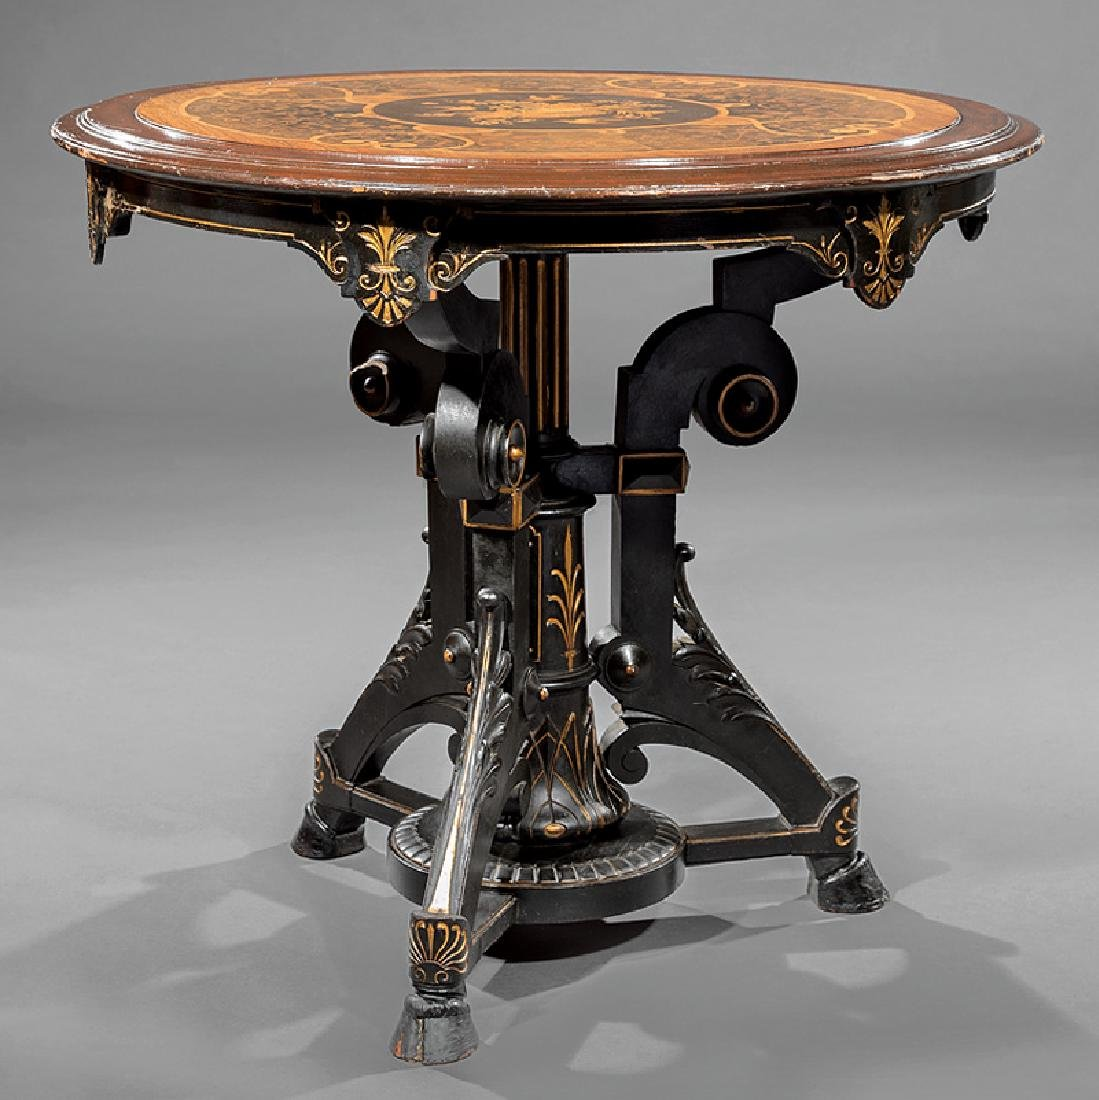 Carved, Ebonized Gilt-Incised and Marquetry Table